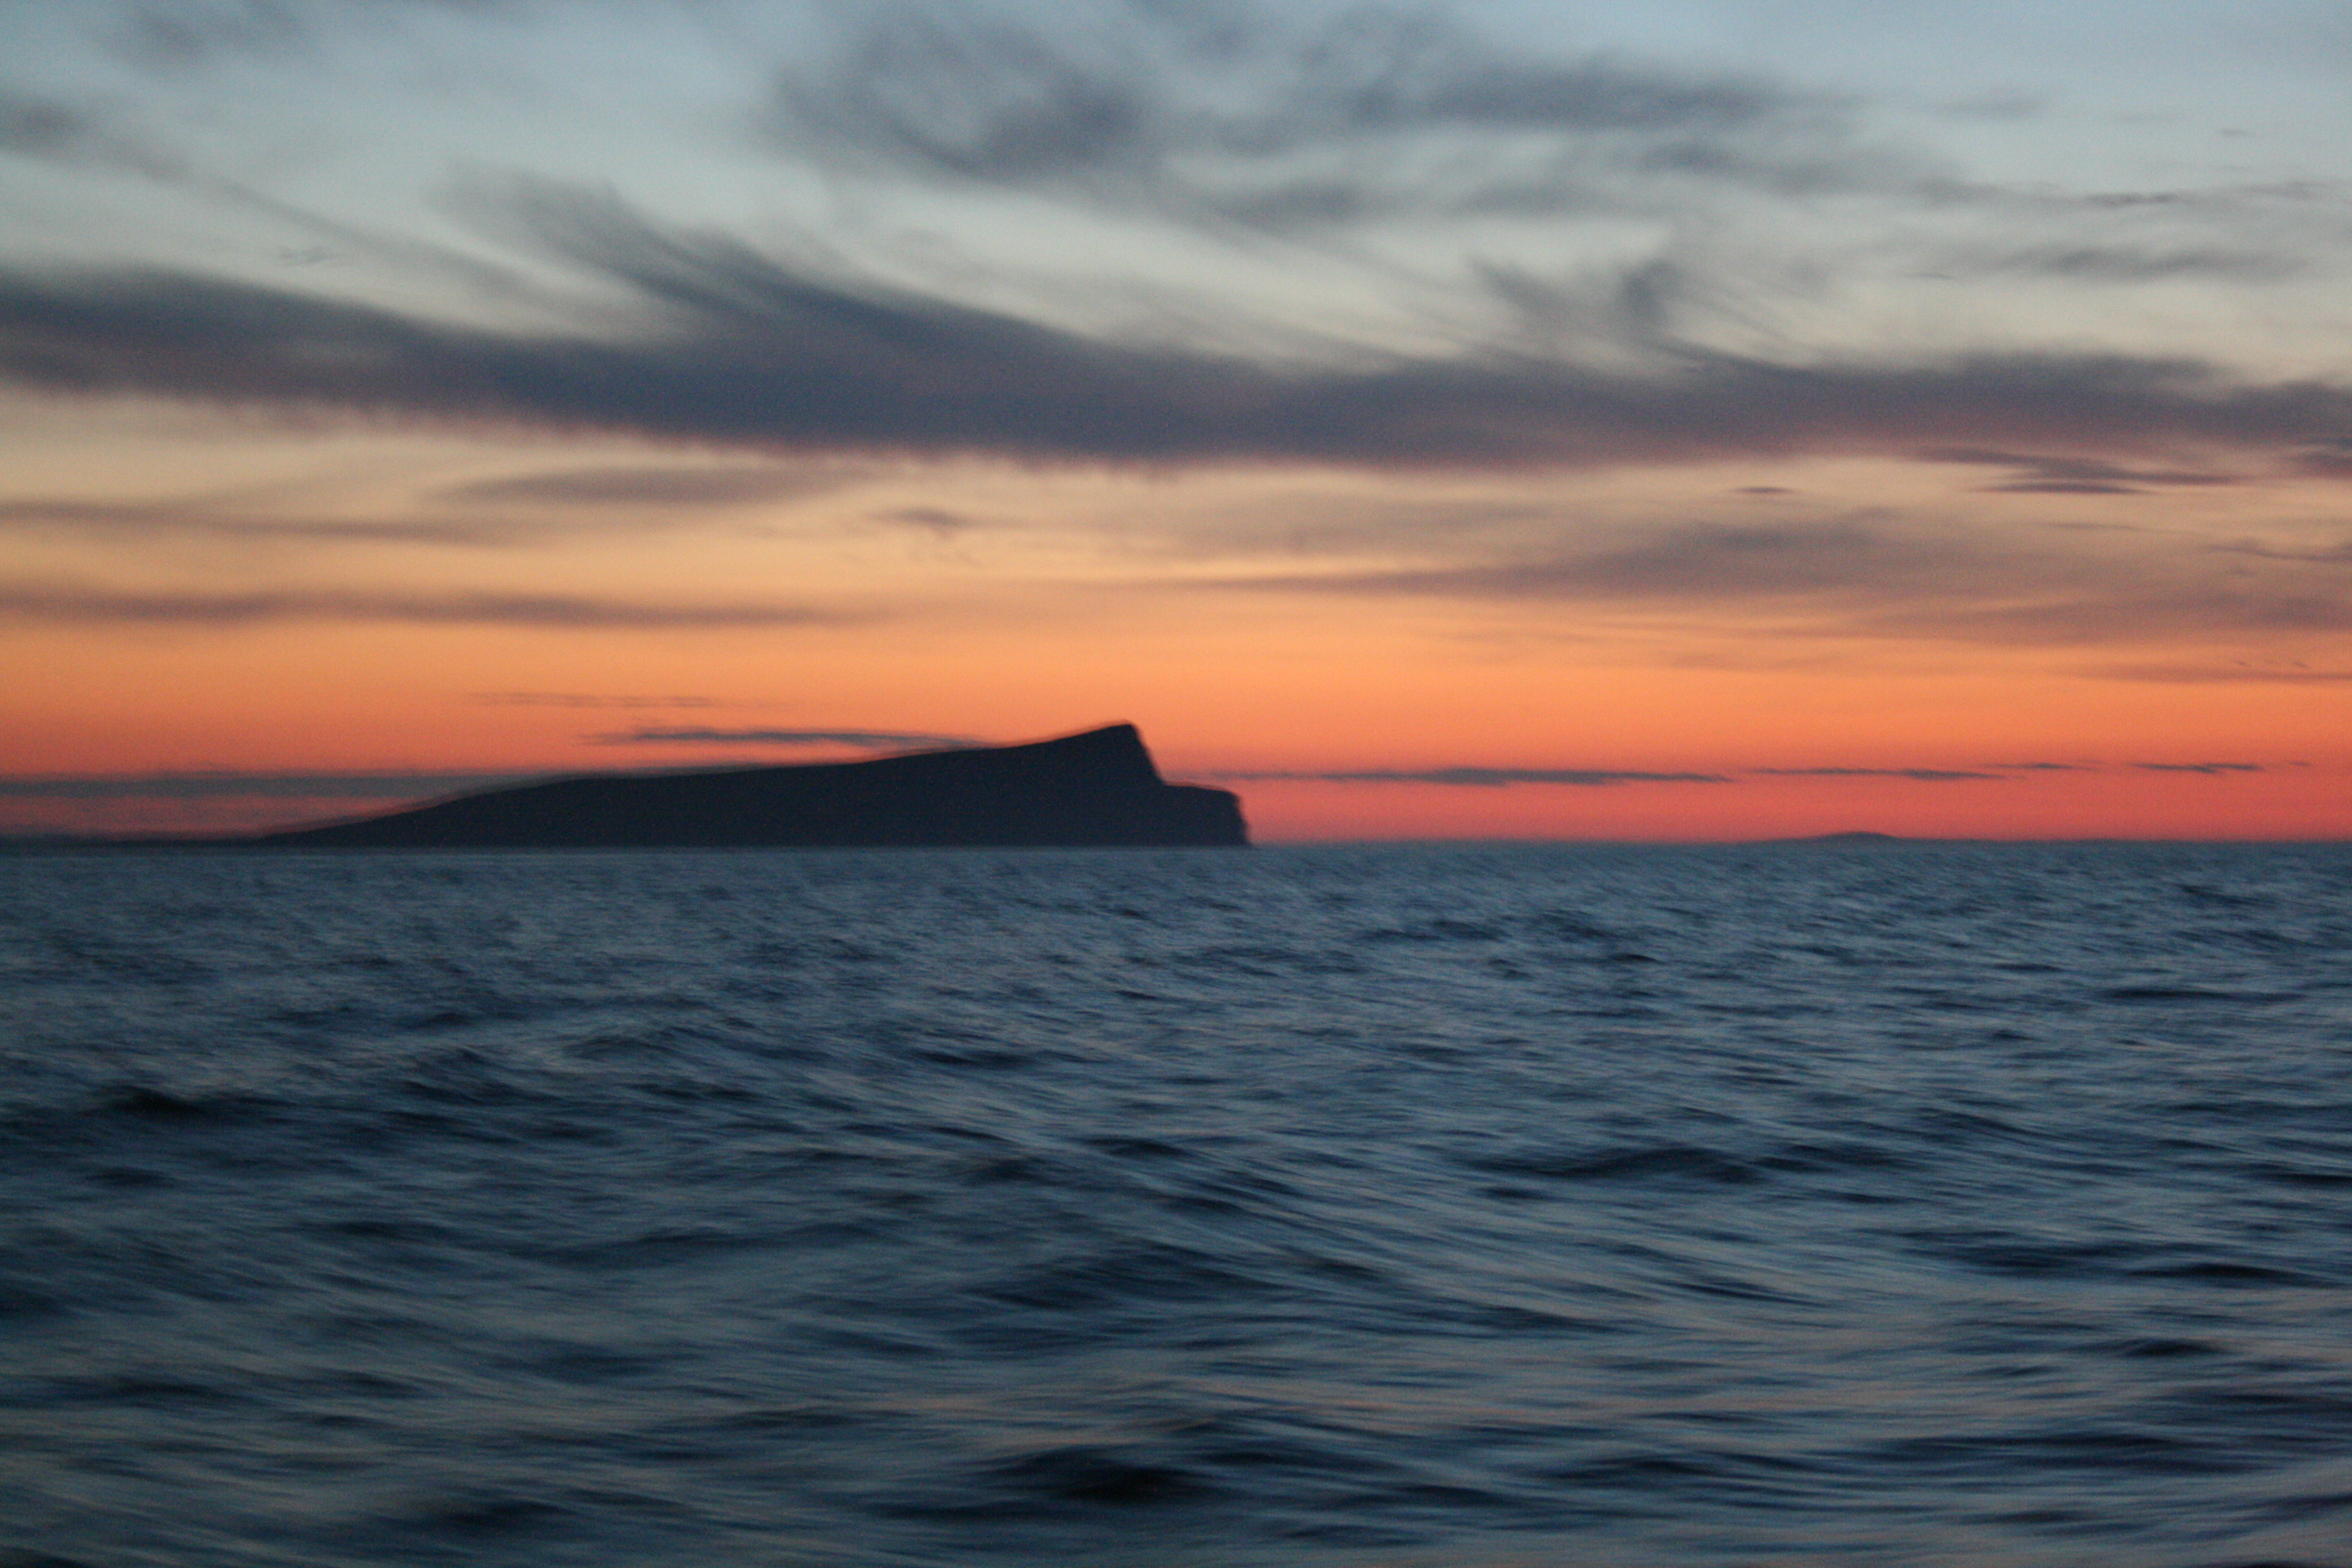 First glimpse of the Noss and Shetland